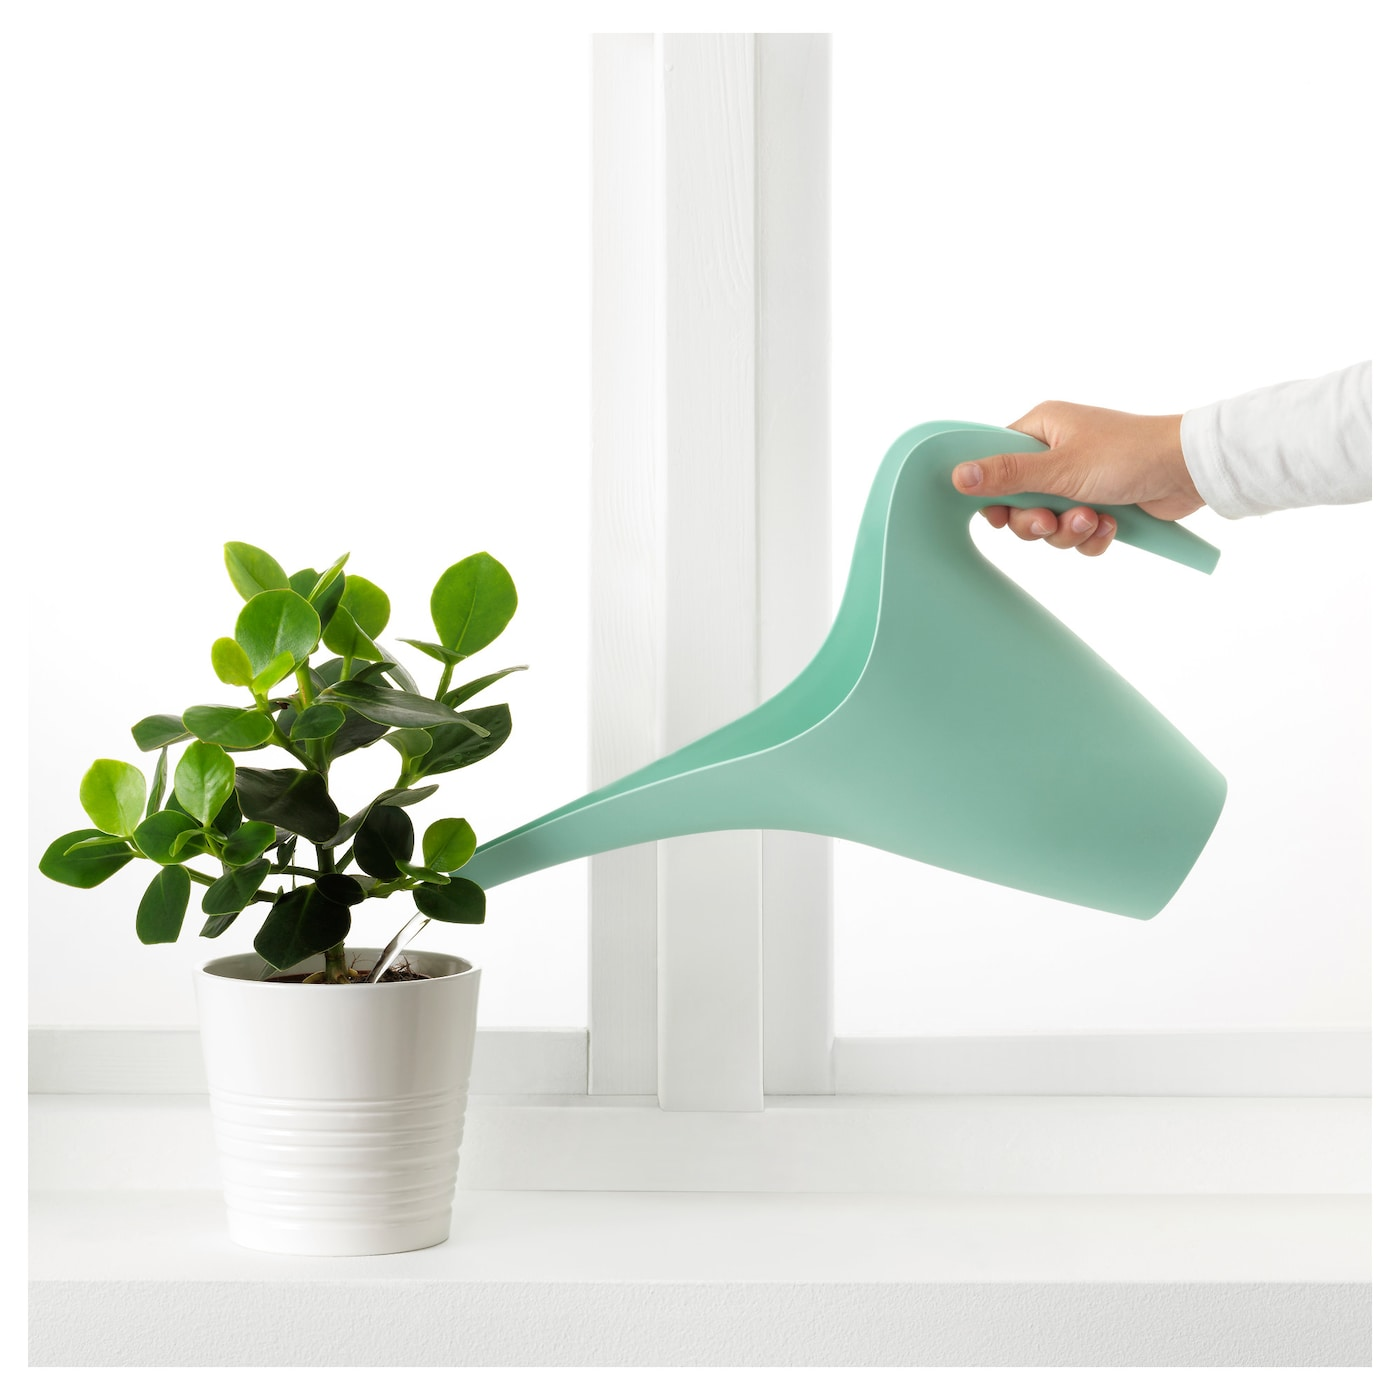 IKEA IKEA PS 2002 watering can